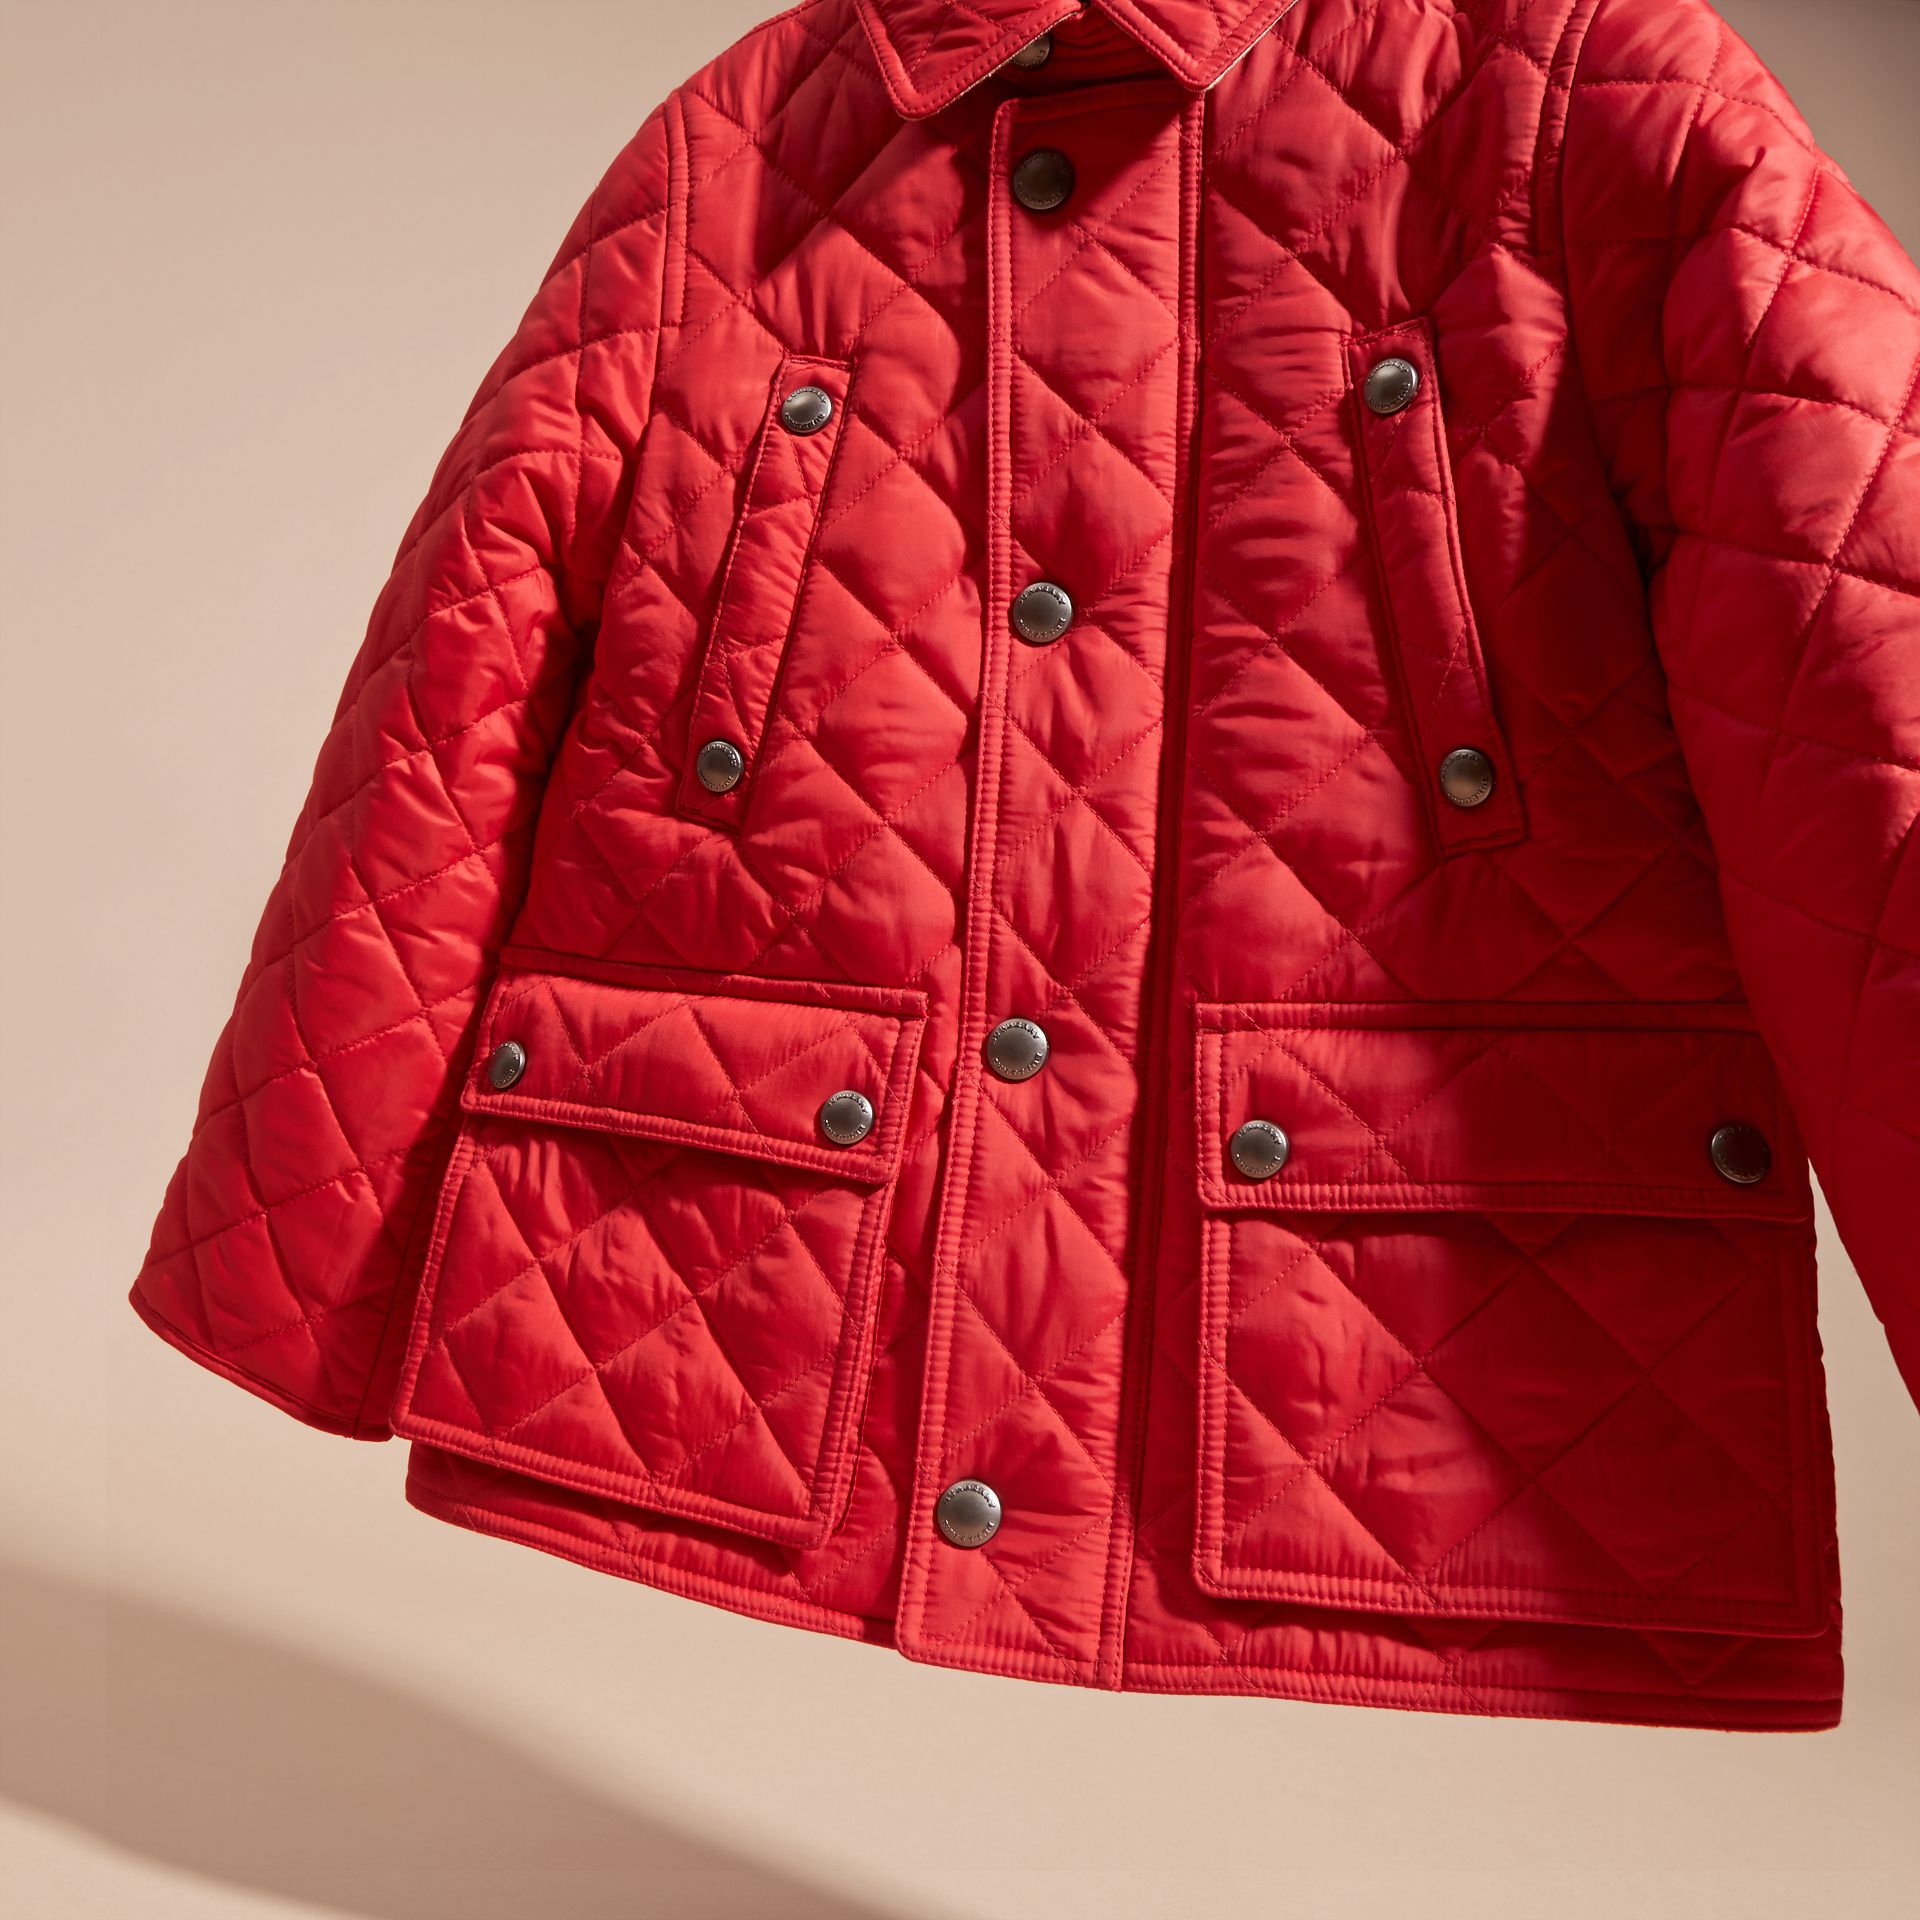 Bright cherry red Lightweight Quilted Jacket with Detachable Hood Bright Cherry Red - gallery image 3